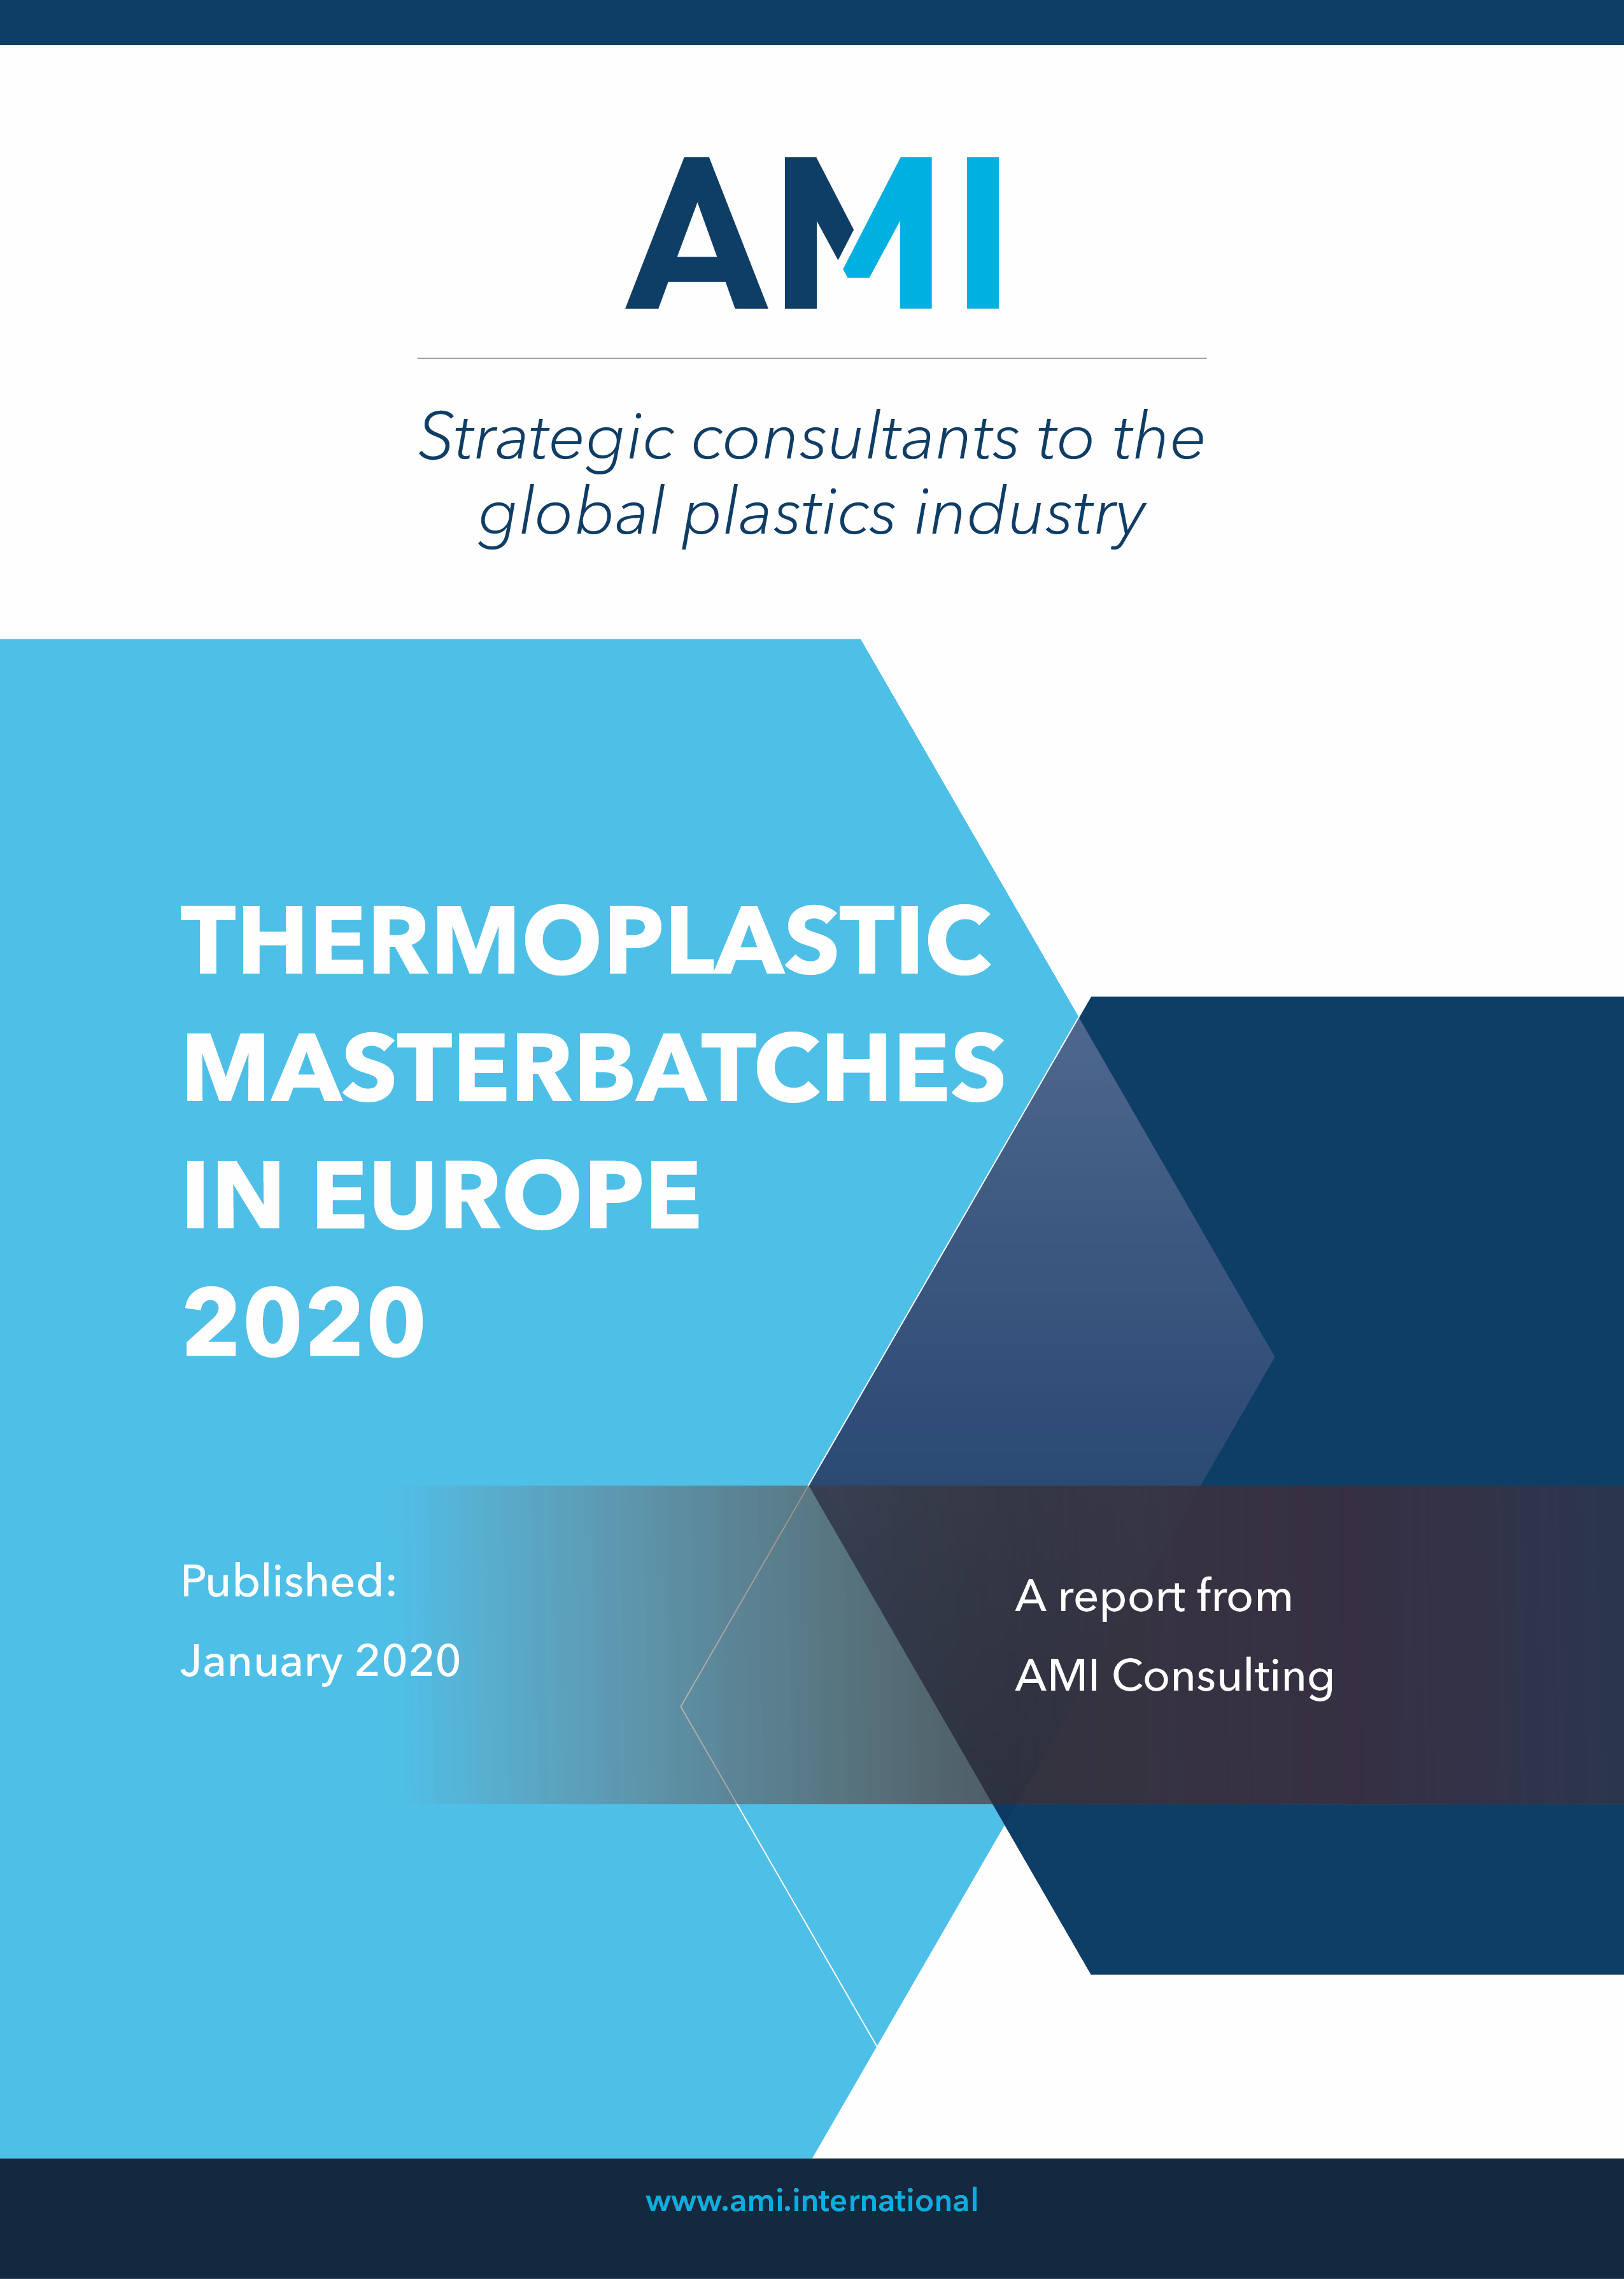 Thermoplastic masterbatches in Europe